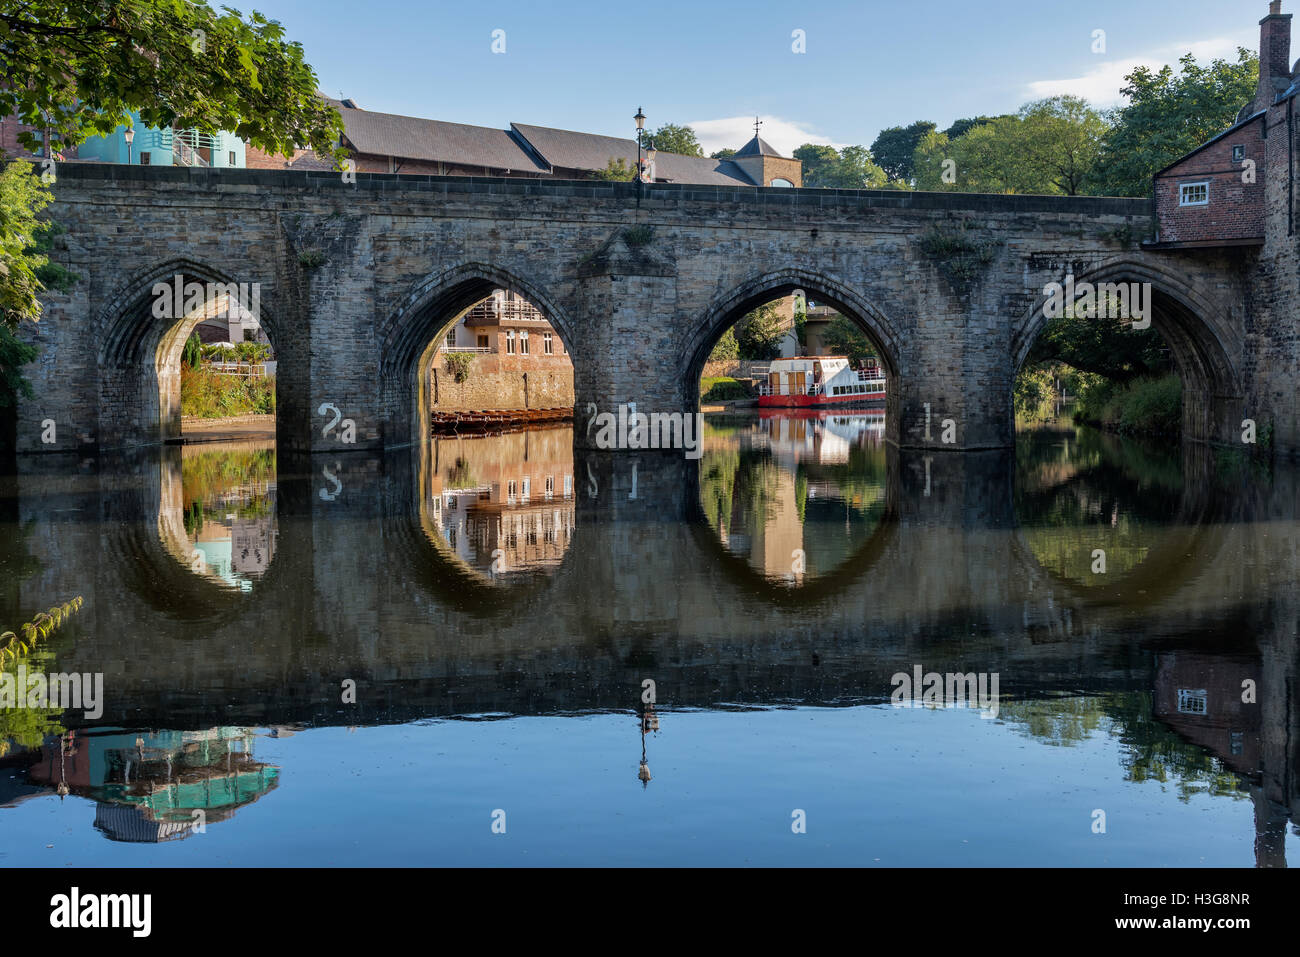 Old stone bridge crossing over River Wear running through the center of the Durham city, England. - Stock Image